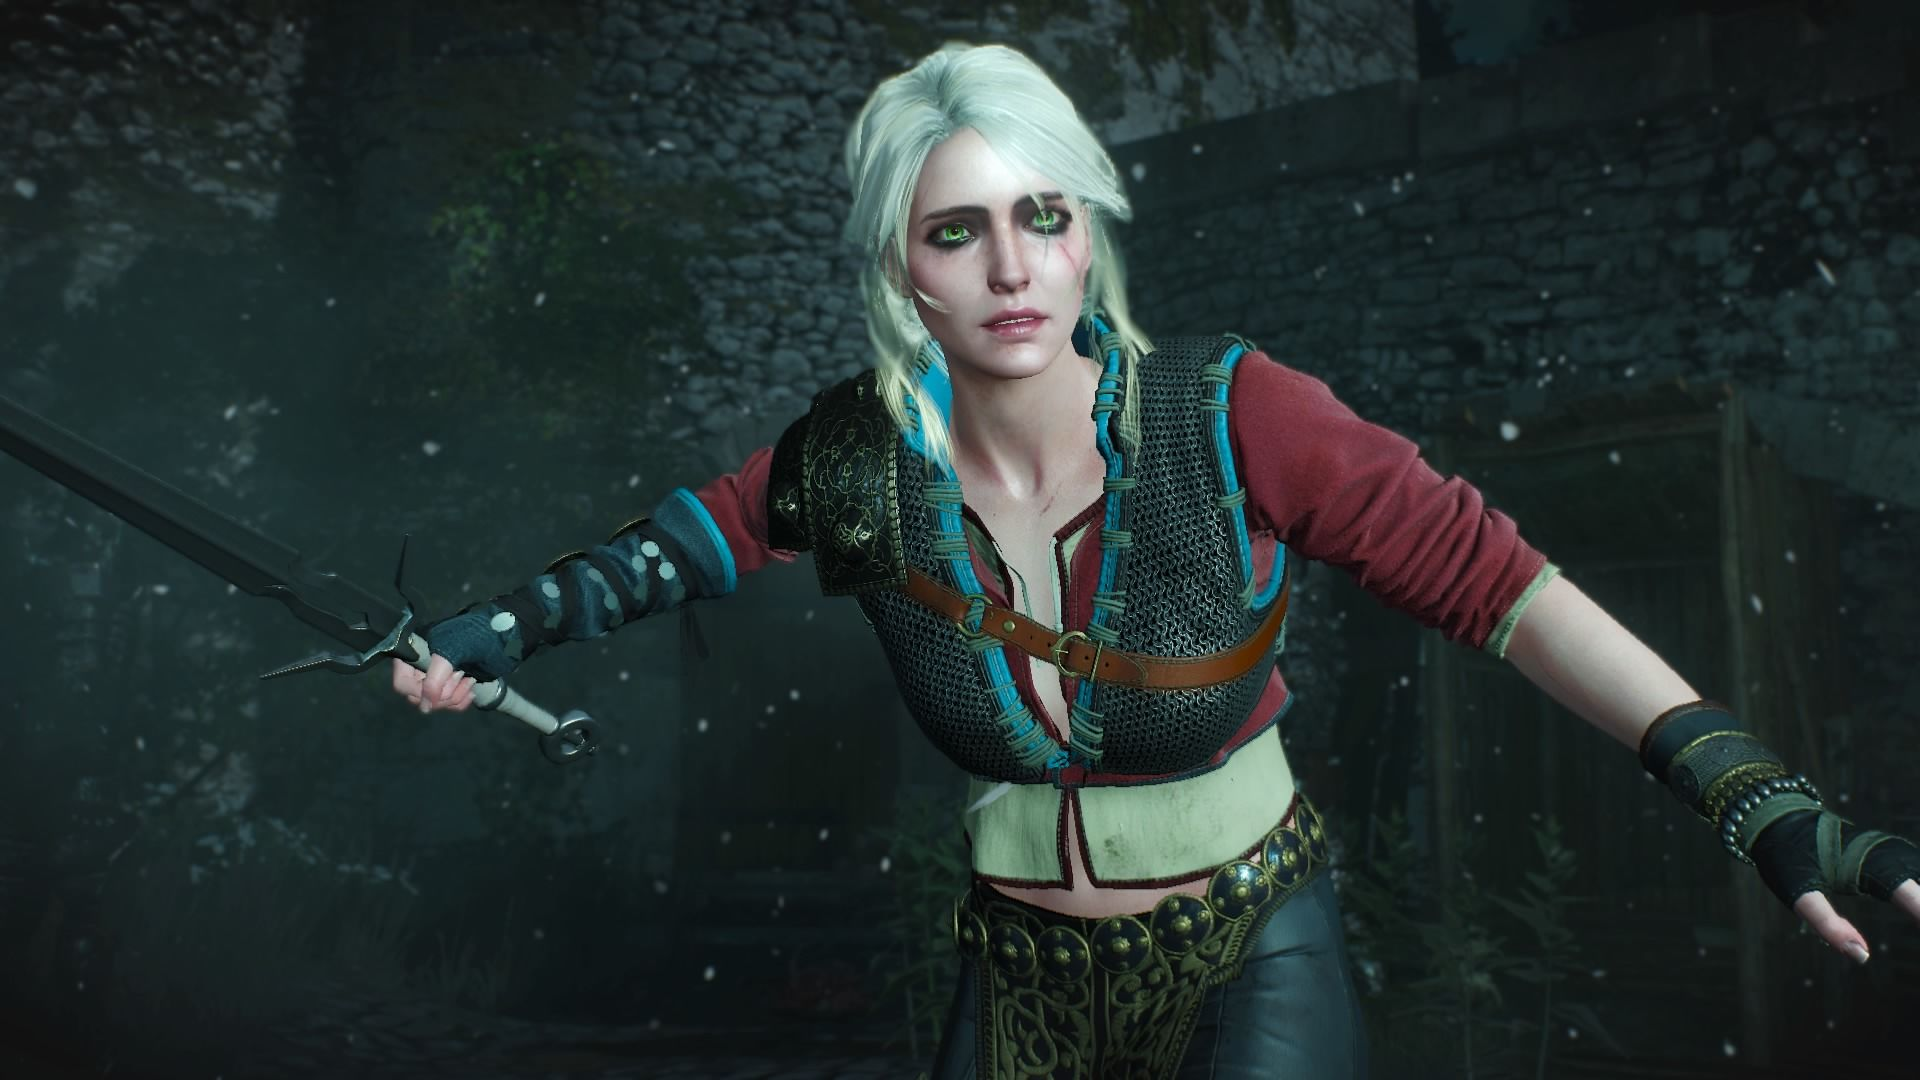 The Witcher 4 Should See Ciri as the Heroine, Says Geralt